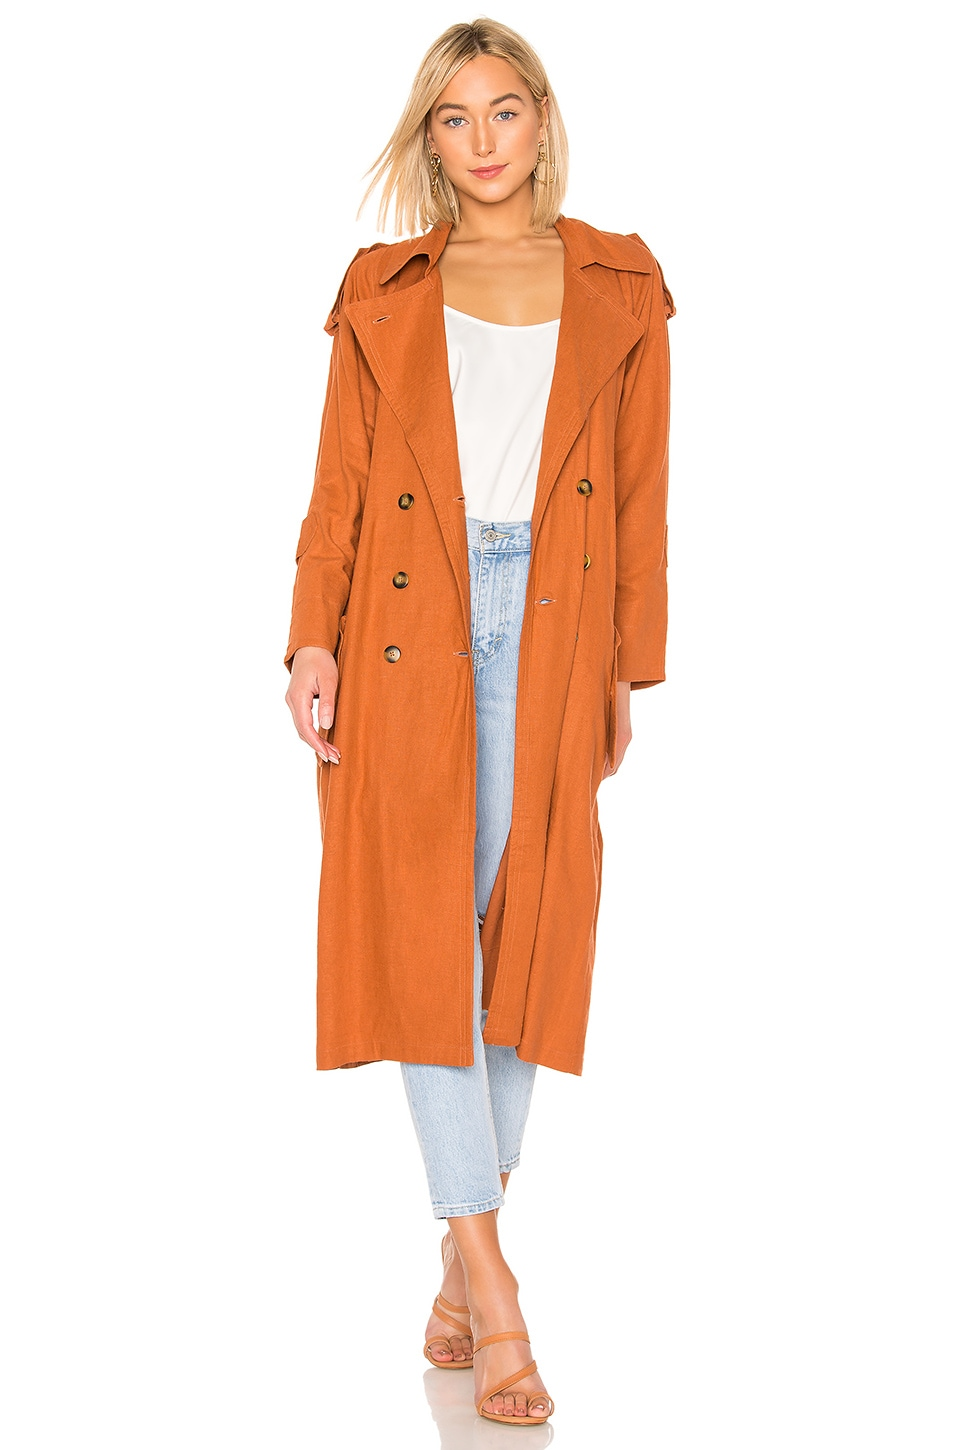 Jen's Pirate Booty Basic Instinct Trench Coat in Sunburn